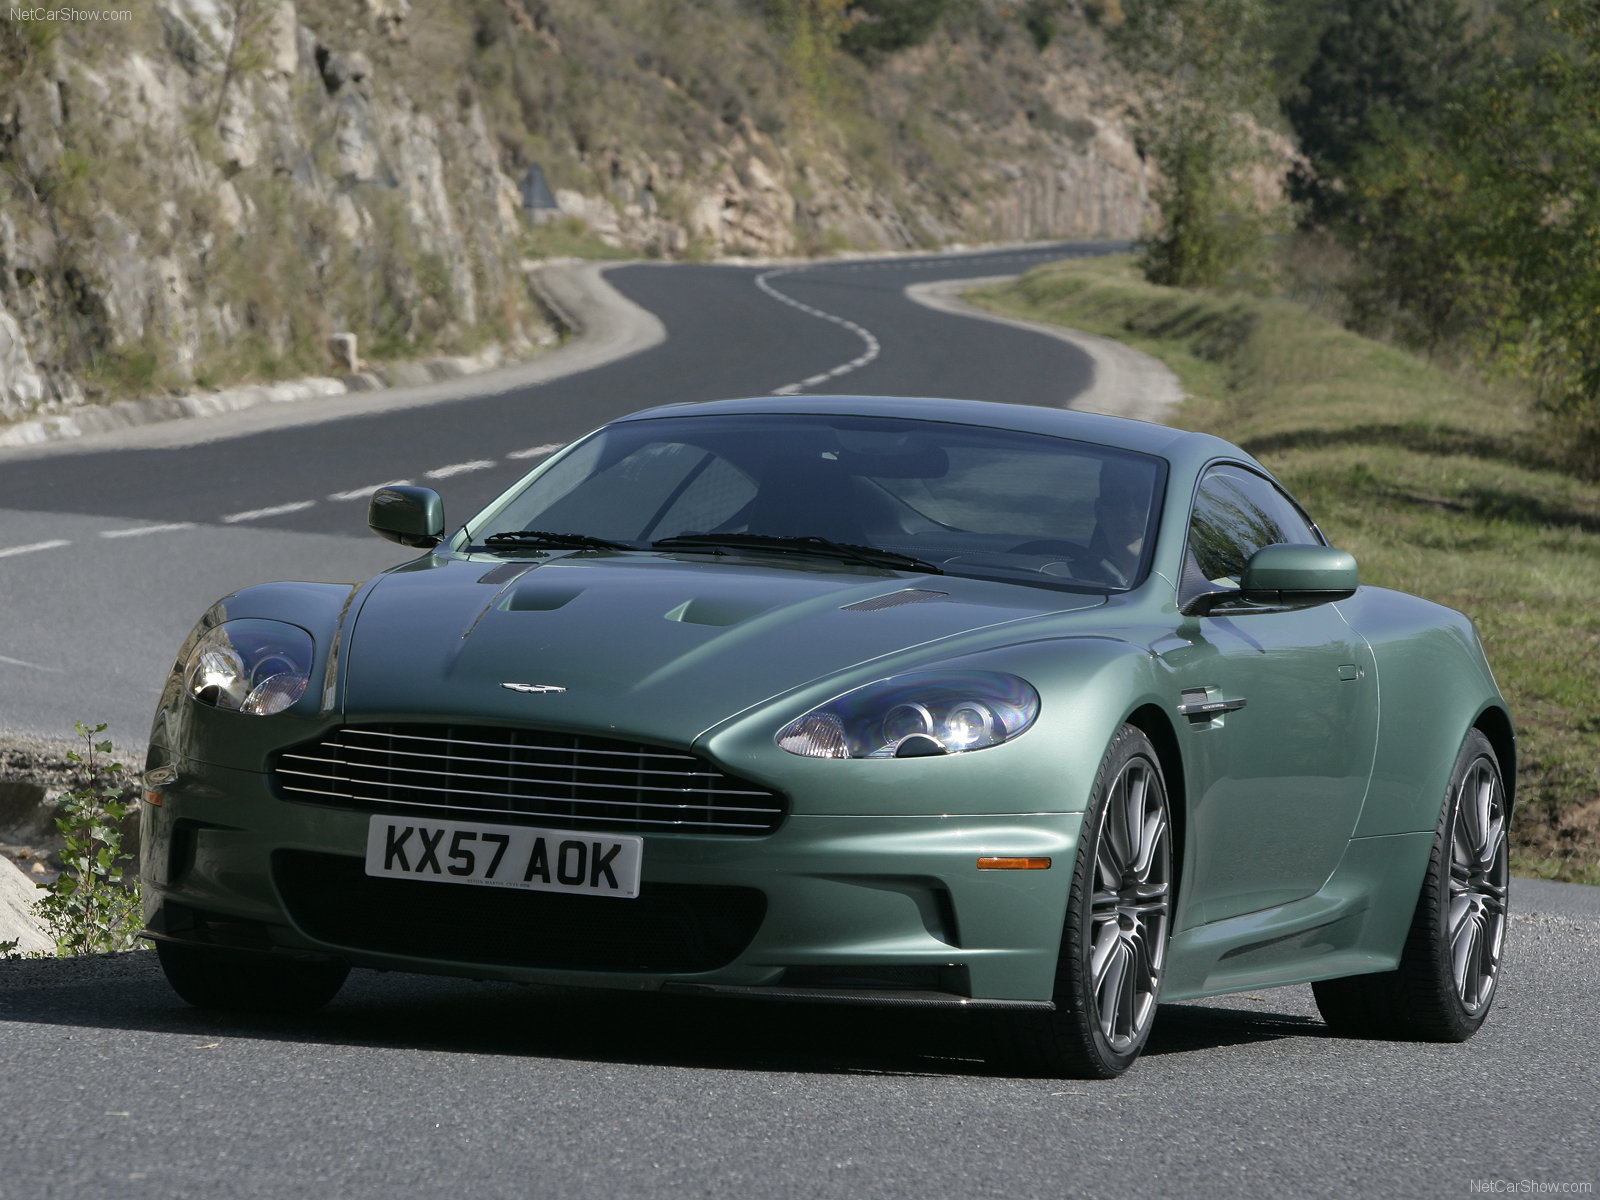 Aston Martin DBS Racing Green photo 49827